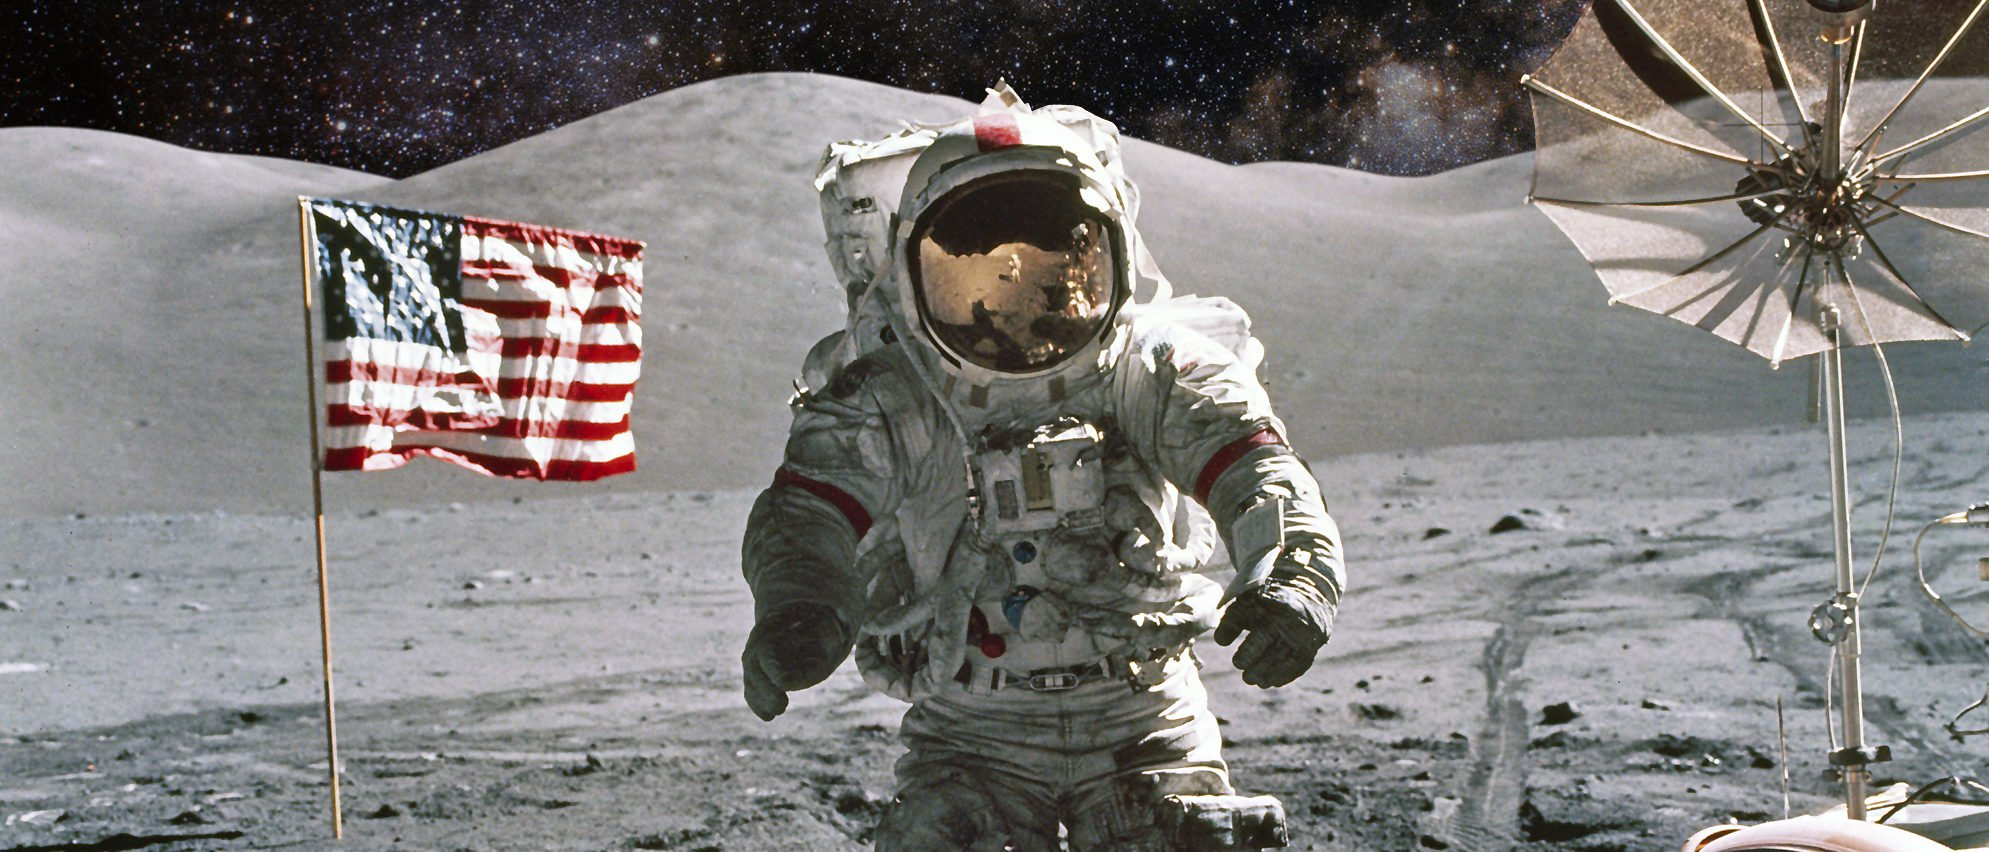 Trump Makes Astronauts Going Back To The Moon Official US Policy https://t.co/PRoKGSElZH https://t.co/J0ANCtlFhi